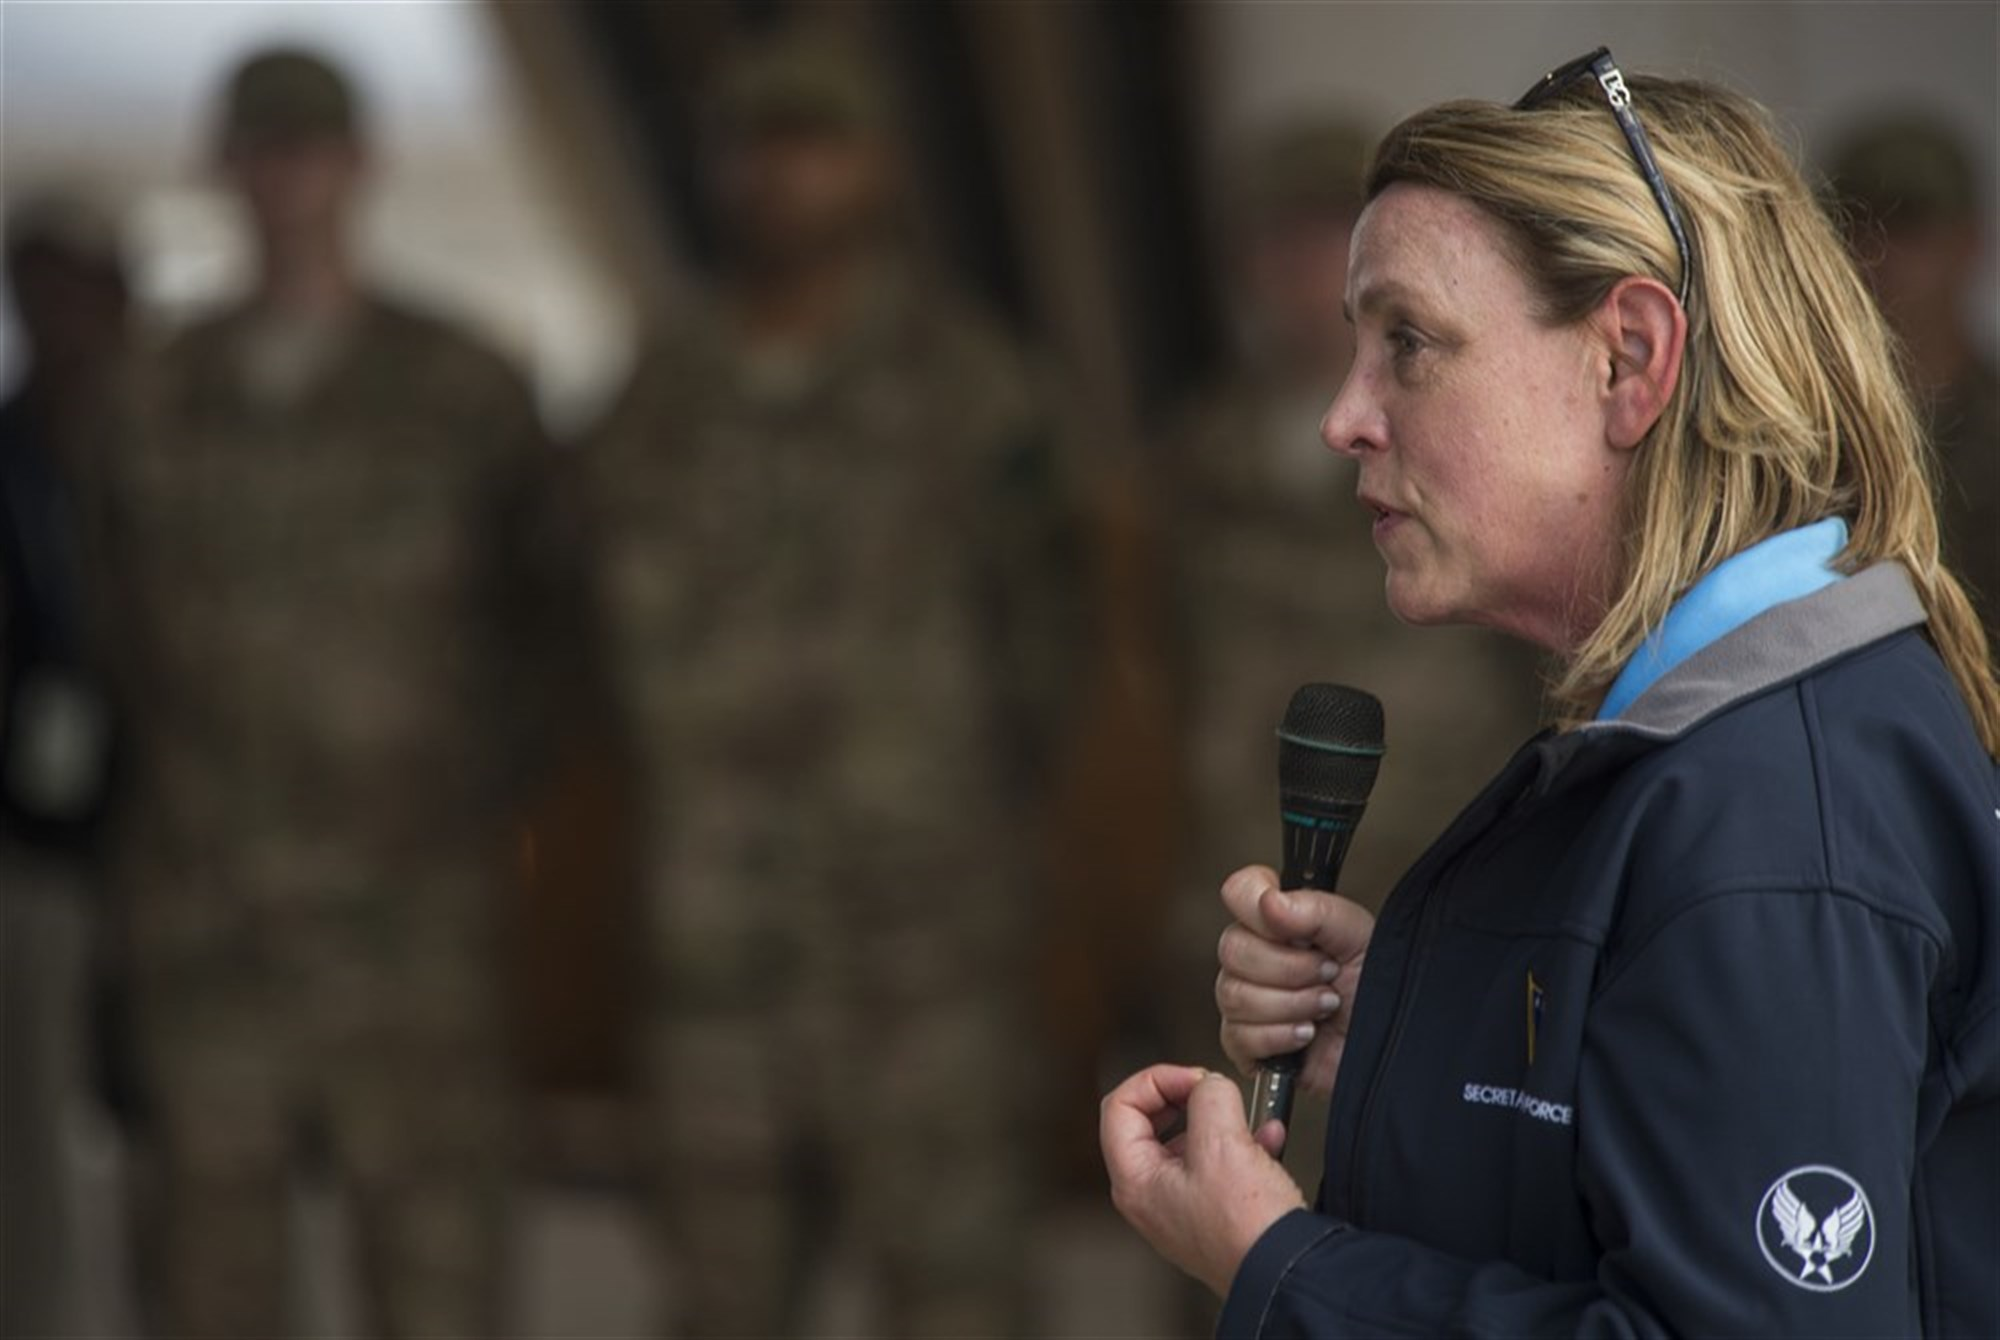 Secretary of the Air Force Deborah Lee James speaks to a group of Airmen at Chebelley Airfield, Djibouti, Nov.12, 2015. During her visit, James spoke at an all-call where she answered Airmen's questions and provided updates about current issues around the Air Force.